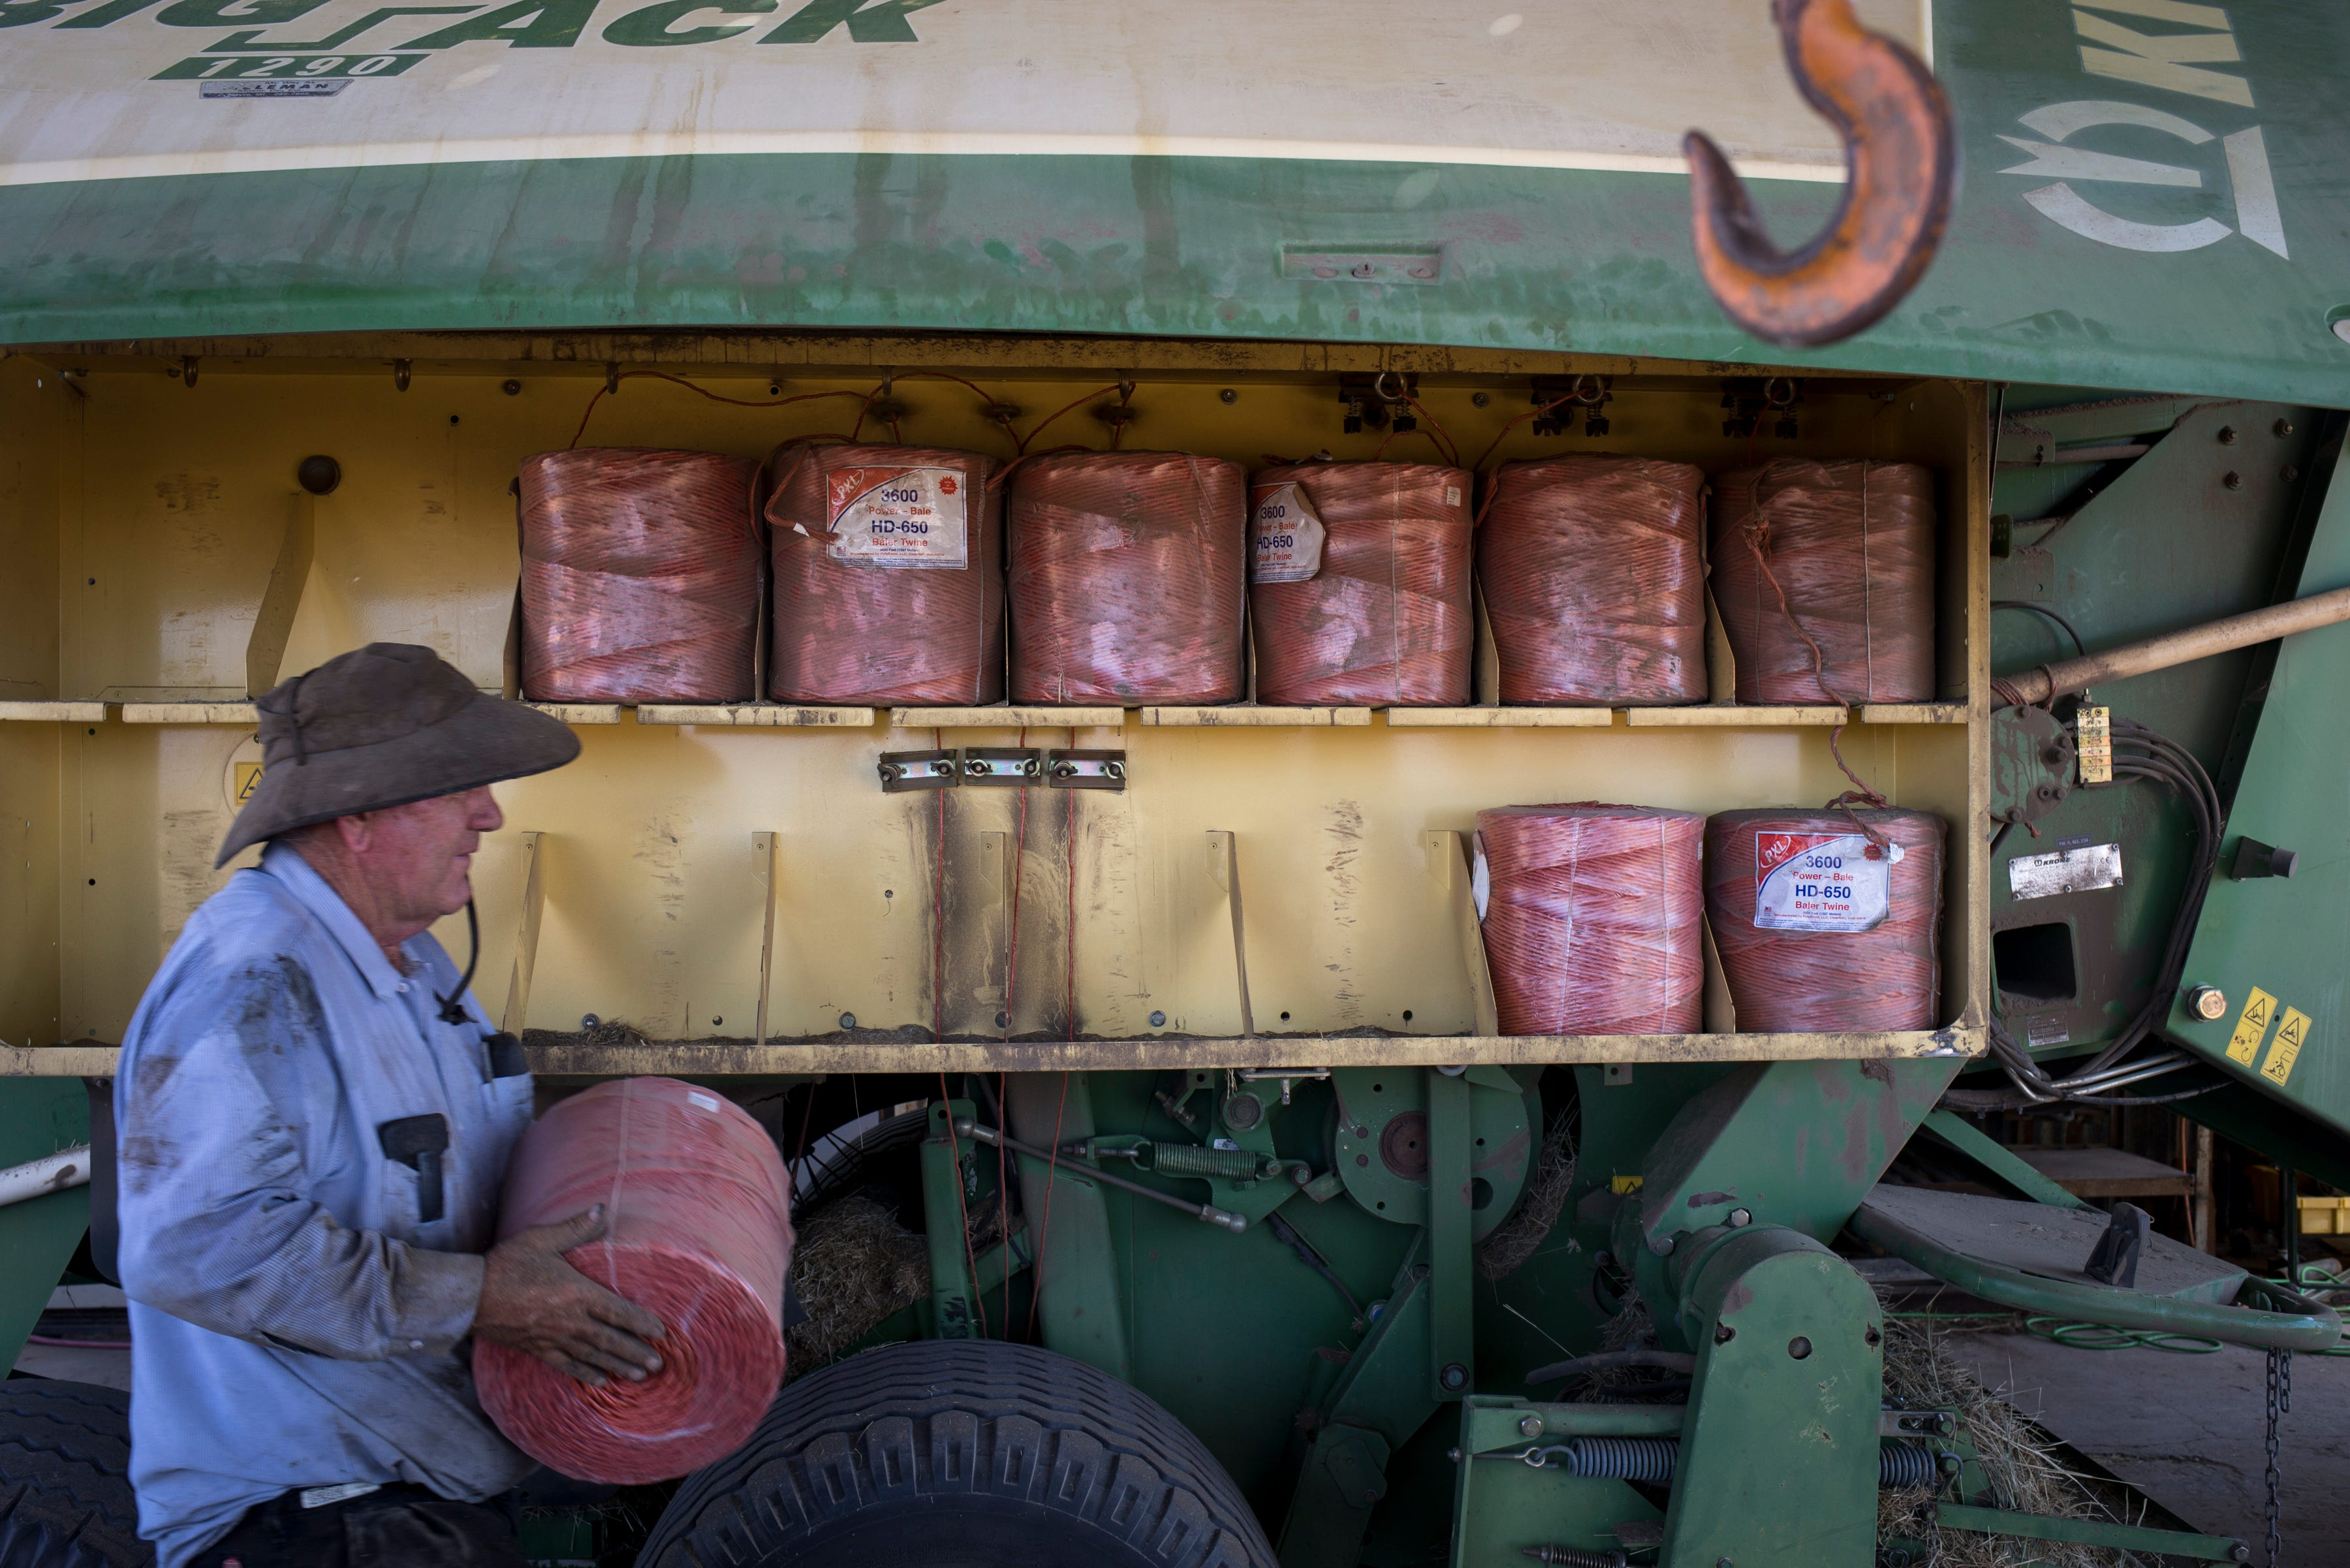 Mark Skousen reloads his hay baler with baling twine, September 12, 2019, while working on his farm in Hidden Valley, Arizona.